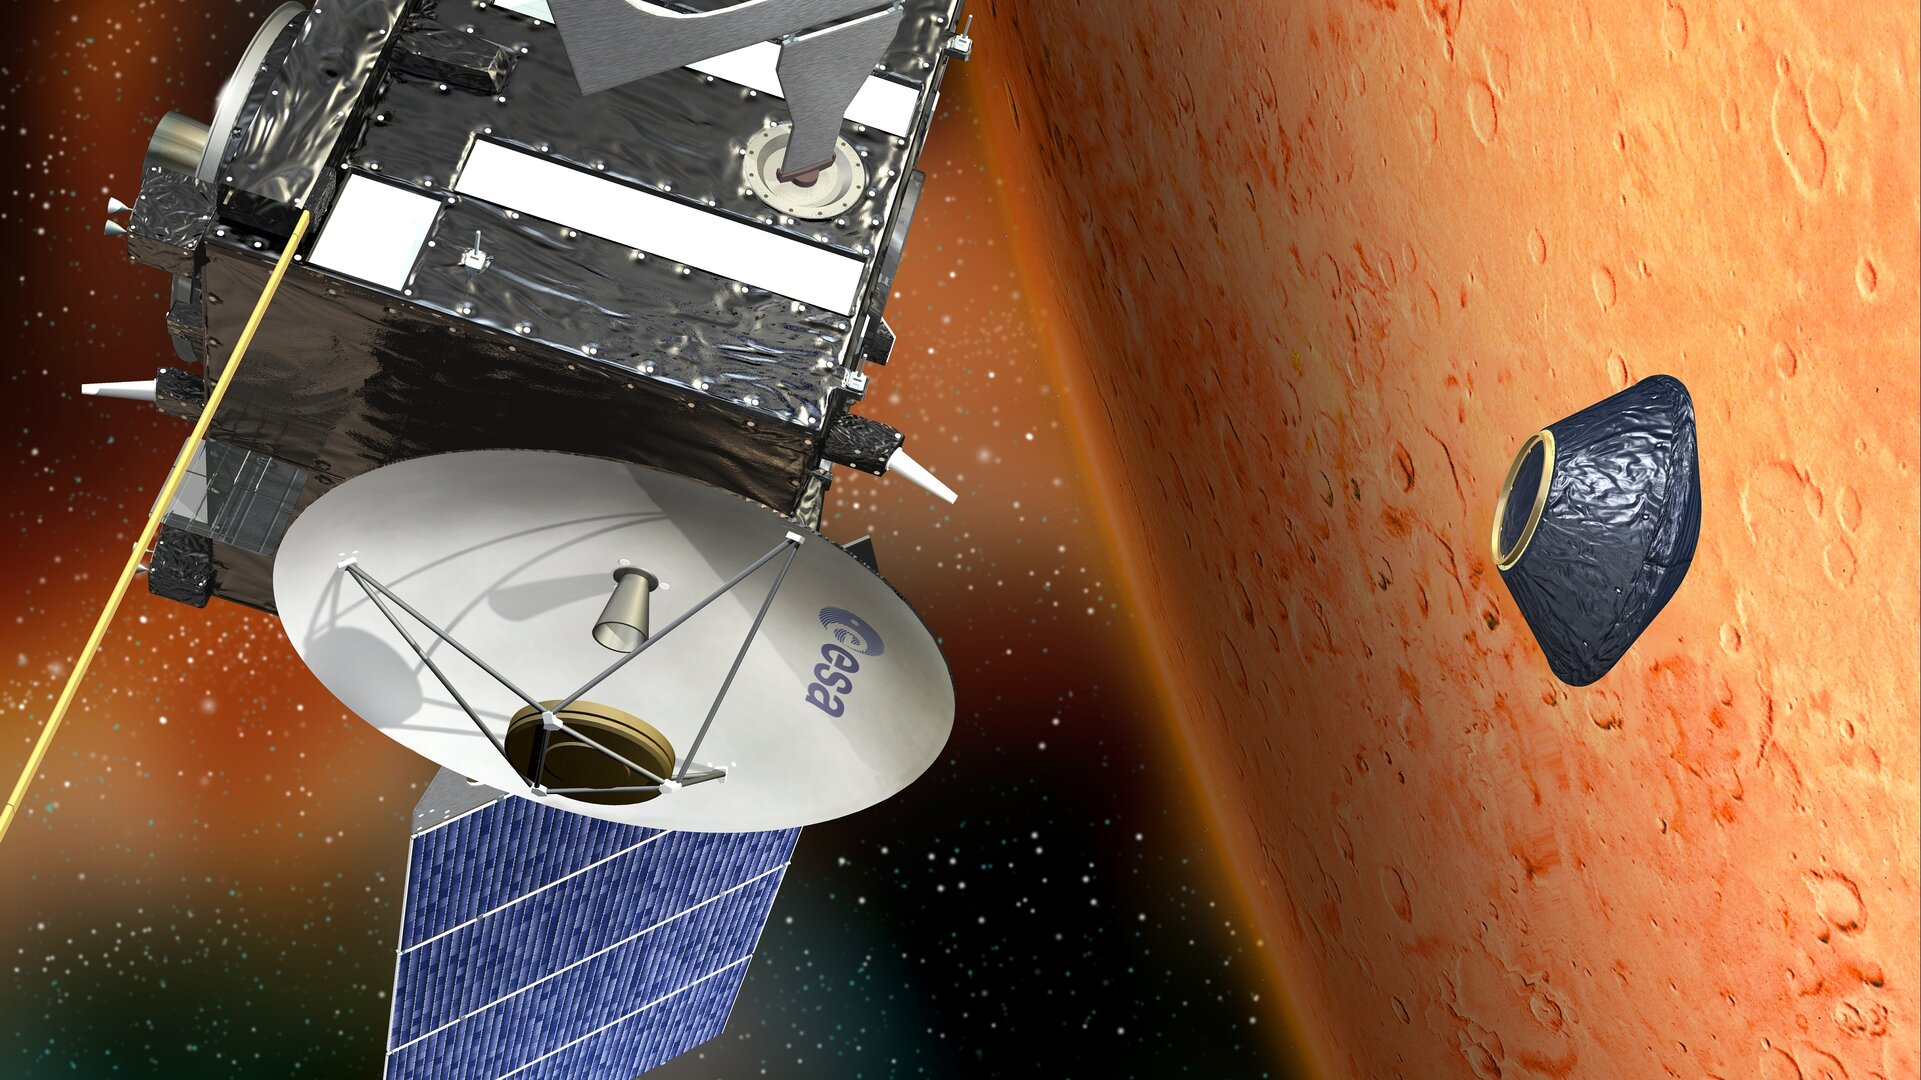 ESA's Mars Express probe releasing the Beagle 2 lander